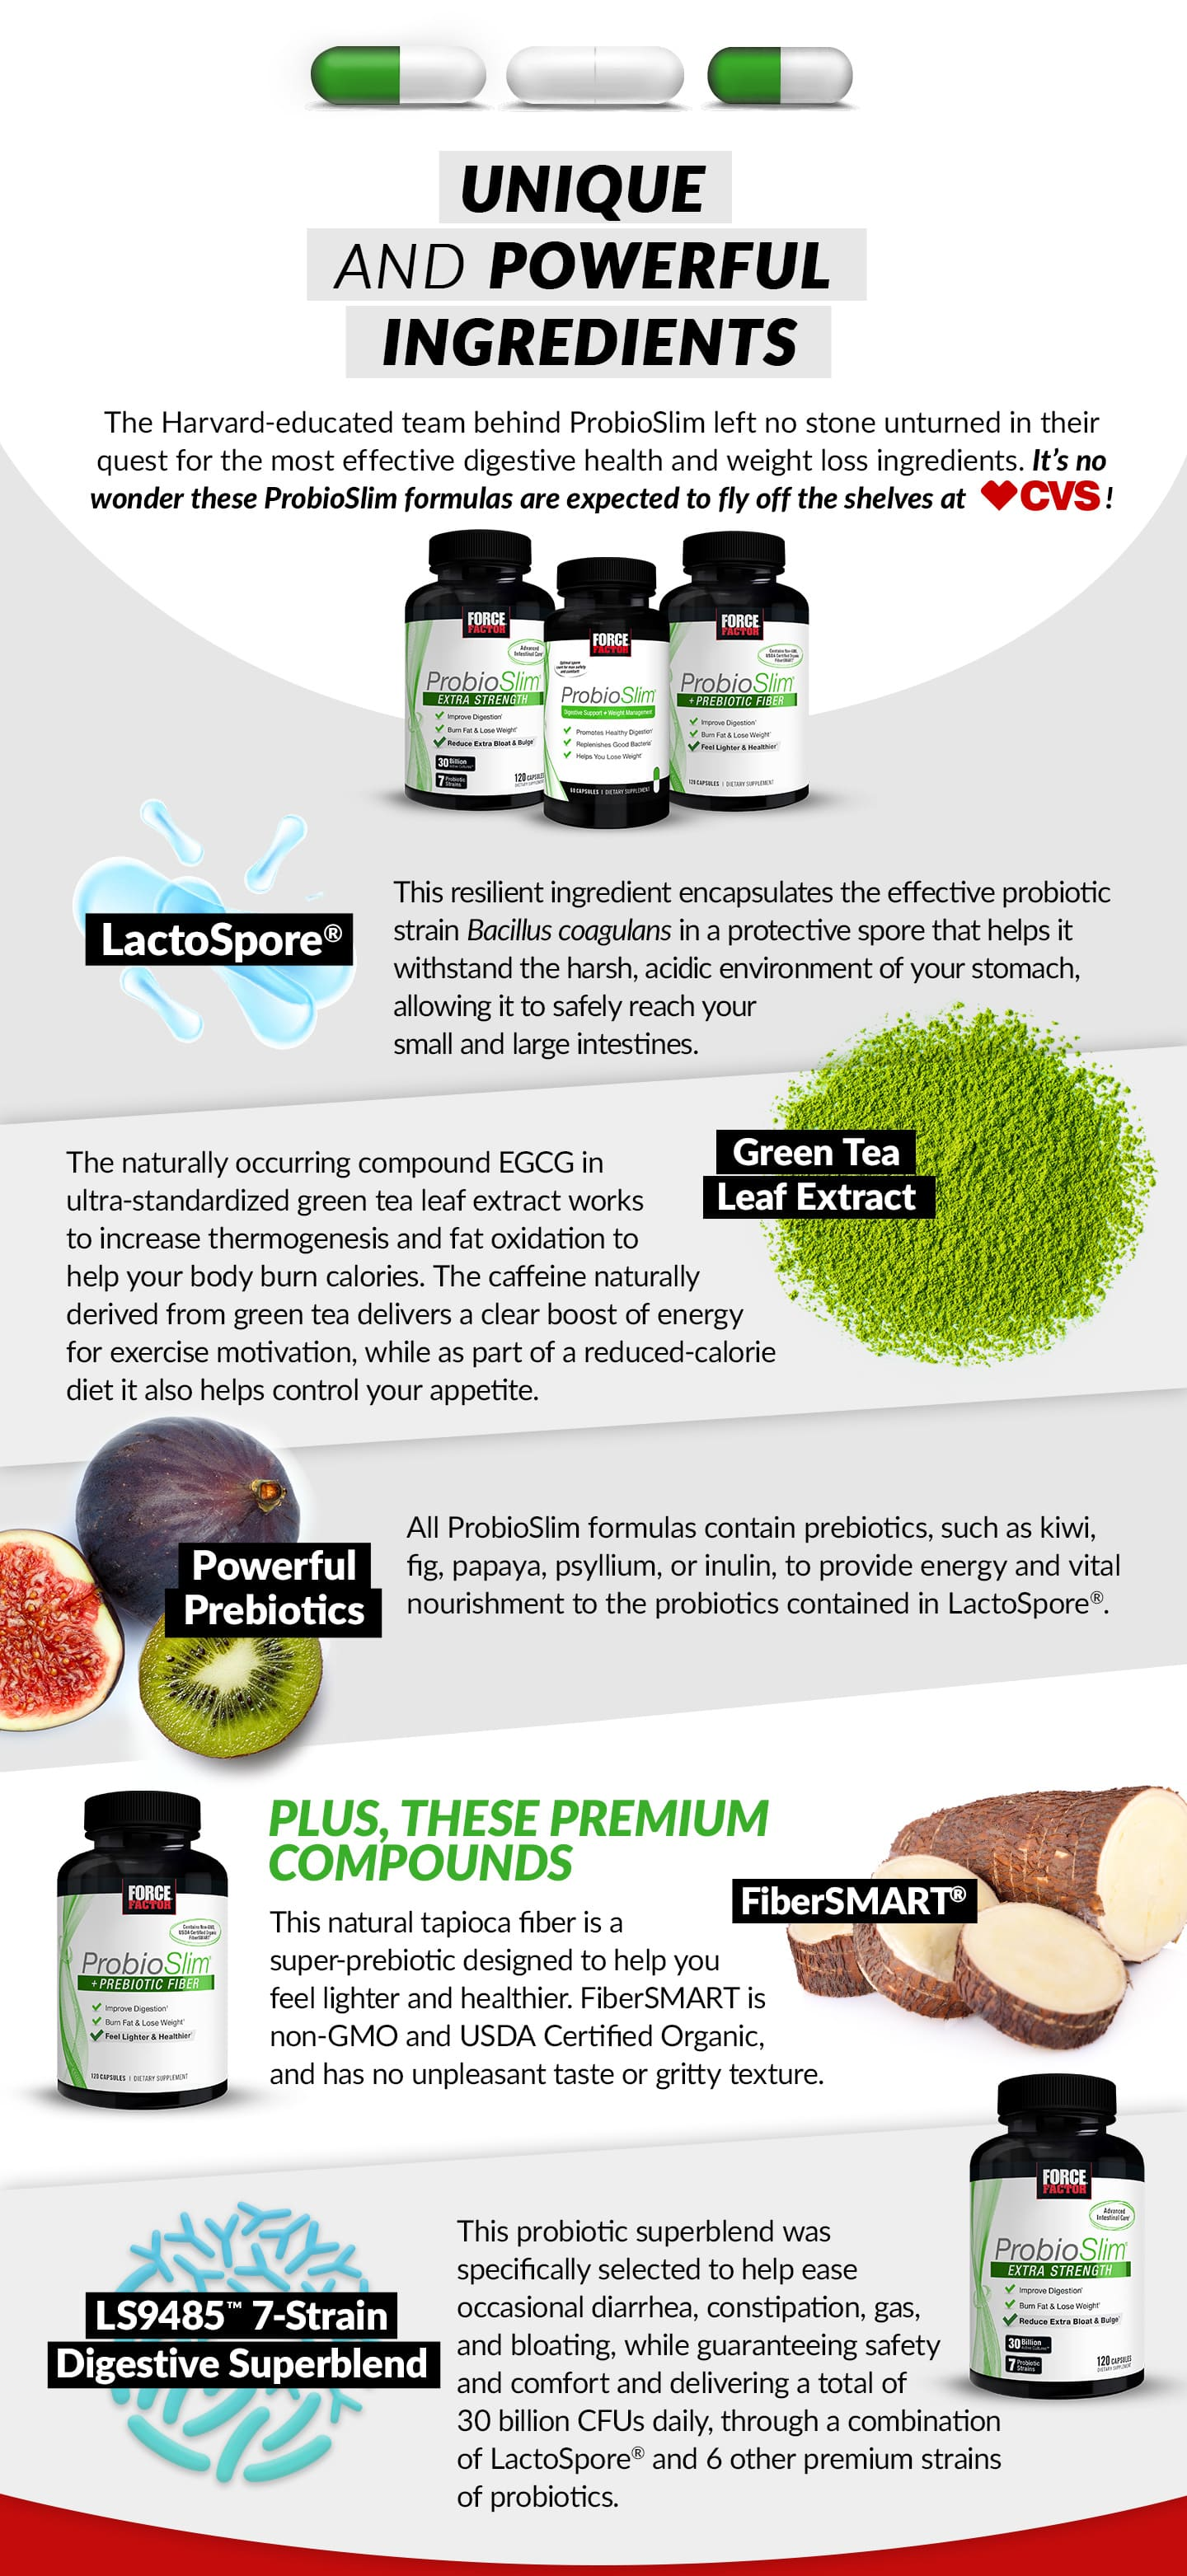 UNIQUE AND POWERFUL INGREDIENTS. The Harvard-educated team behind ProbioSlim left no stone unturned in their quest for the most effective digestive health and weight loss ingredients. It's no wonder these ProbioSlim formulas are expected to fly off the shelves at CVS! Bottles for ProbioSlim, ProbioSlim + Prebiotic Fiber, and ProbioSlim Extra Strength. LactoSpore Ingredient Image. LactoSpore. This resilient ingredient encapsulates the effective probiotic strain Bacillus coagulans in a protective spore that helps it withstand the harsh, acidic environment of your stomach, allowing it to safely reach your small and large intestines. Green Tea Leaf Extract Ingredient Photo. Green Tea Leaf Extract. The naturally occurring compound EGCG in ultra-standardized green tealeaf extract works to increase thermogenesis and fat oxidation to help your body burn calories. The caffeine naturally derived from green tea delivers a clear boost of energy for exercise motivation, while as part of a reduced-calorie diet it also helps control your appetite. Powerful Prebiotics. All ProbioSlim formulas contain prebiotics, such as kiwi, fig, papaya, psyllium, or inulin, to provide energy and vital nourishment to the probiotics contained in LactoSpore®. PLUS, THESE PREMIUM COMPOUNDS. ProbioSlim + Prebiotic Fiber Bottle. FiberSMART Ingredient Image, FiberSMART - This natural tapioca fiber is a super-prebiotic designed to help you feel lighter and healthier. FiberSMART is non-GMO and USDA Certified Organic, and has no unpleasant taste or gritty texture. ProbioSlim Extra Strength Bottle. LS9485 7-Strain Digestive Superblend Ingredient Image. LS9485™ 7-Strain Digestive Superblend. This probiotic superblend was specifically selected to help ease occasional diarrhea, constipation, gas, and bloating, while guaranteeing safety and comfort and delivering a total of 30 billion CFUs daily, through a combination of LactoSpore® and 6 other premium strains of probiotics.